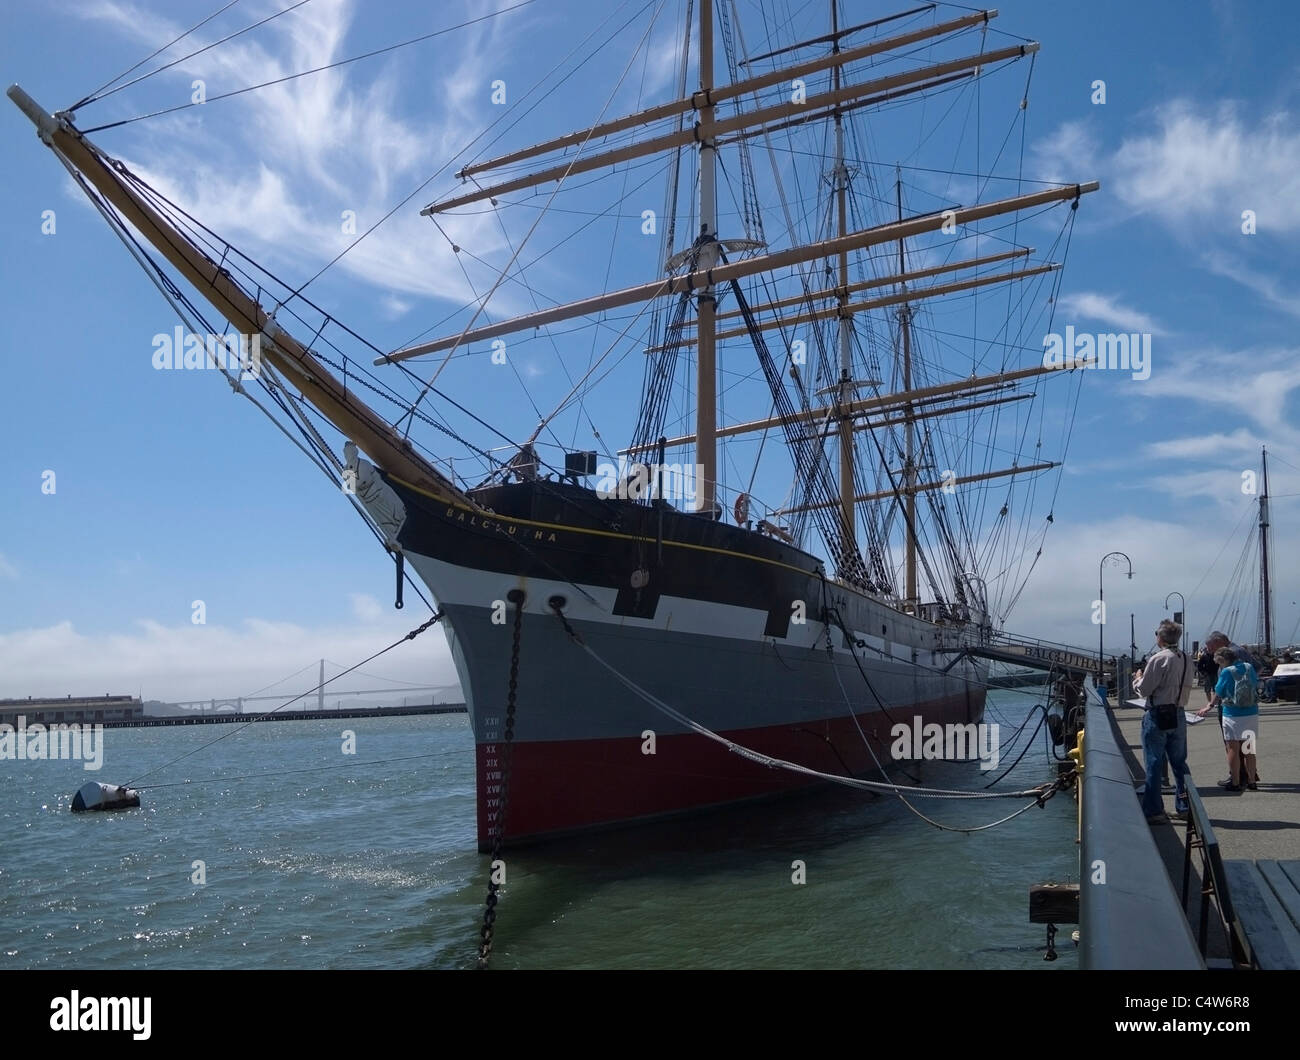 Steel Hulled Square Rigged Sailing Ship Balclutha at Hyde Pier San Francisco - Stock Image